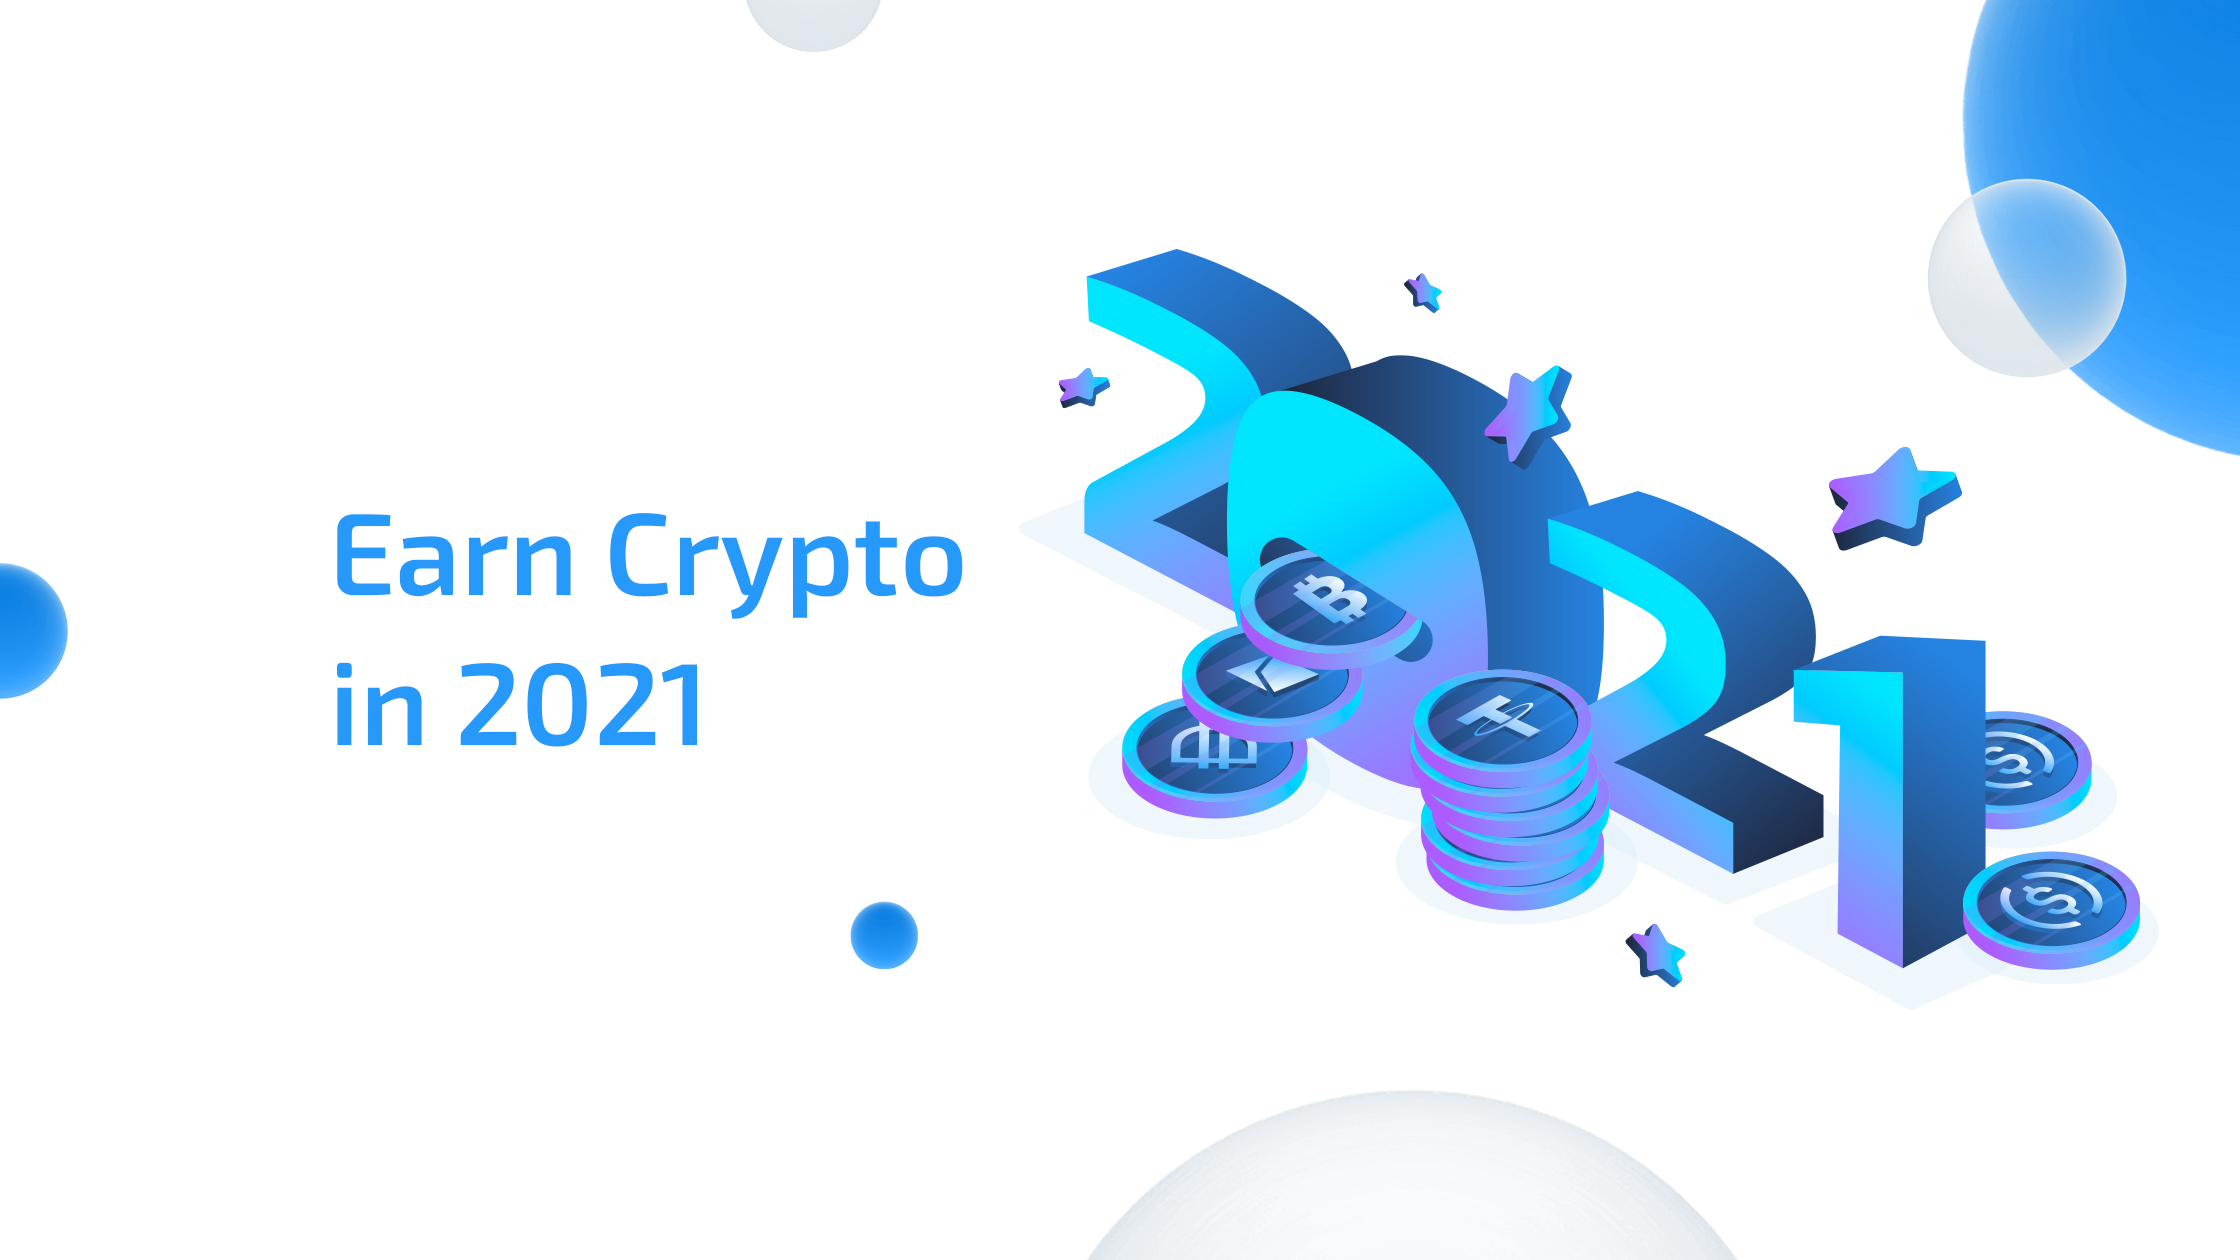 Earn Crypto: Top Ways to Get More Crypto in 2021